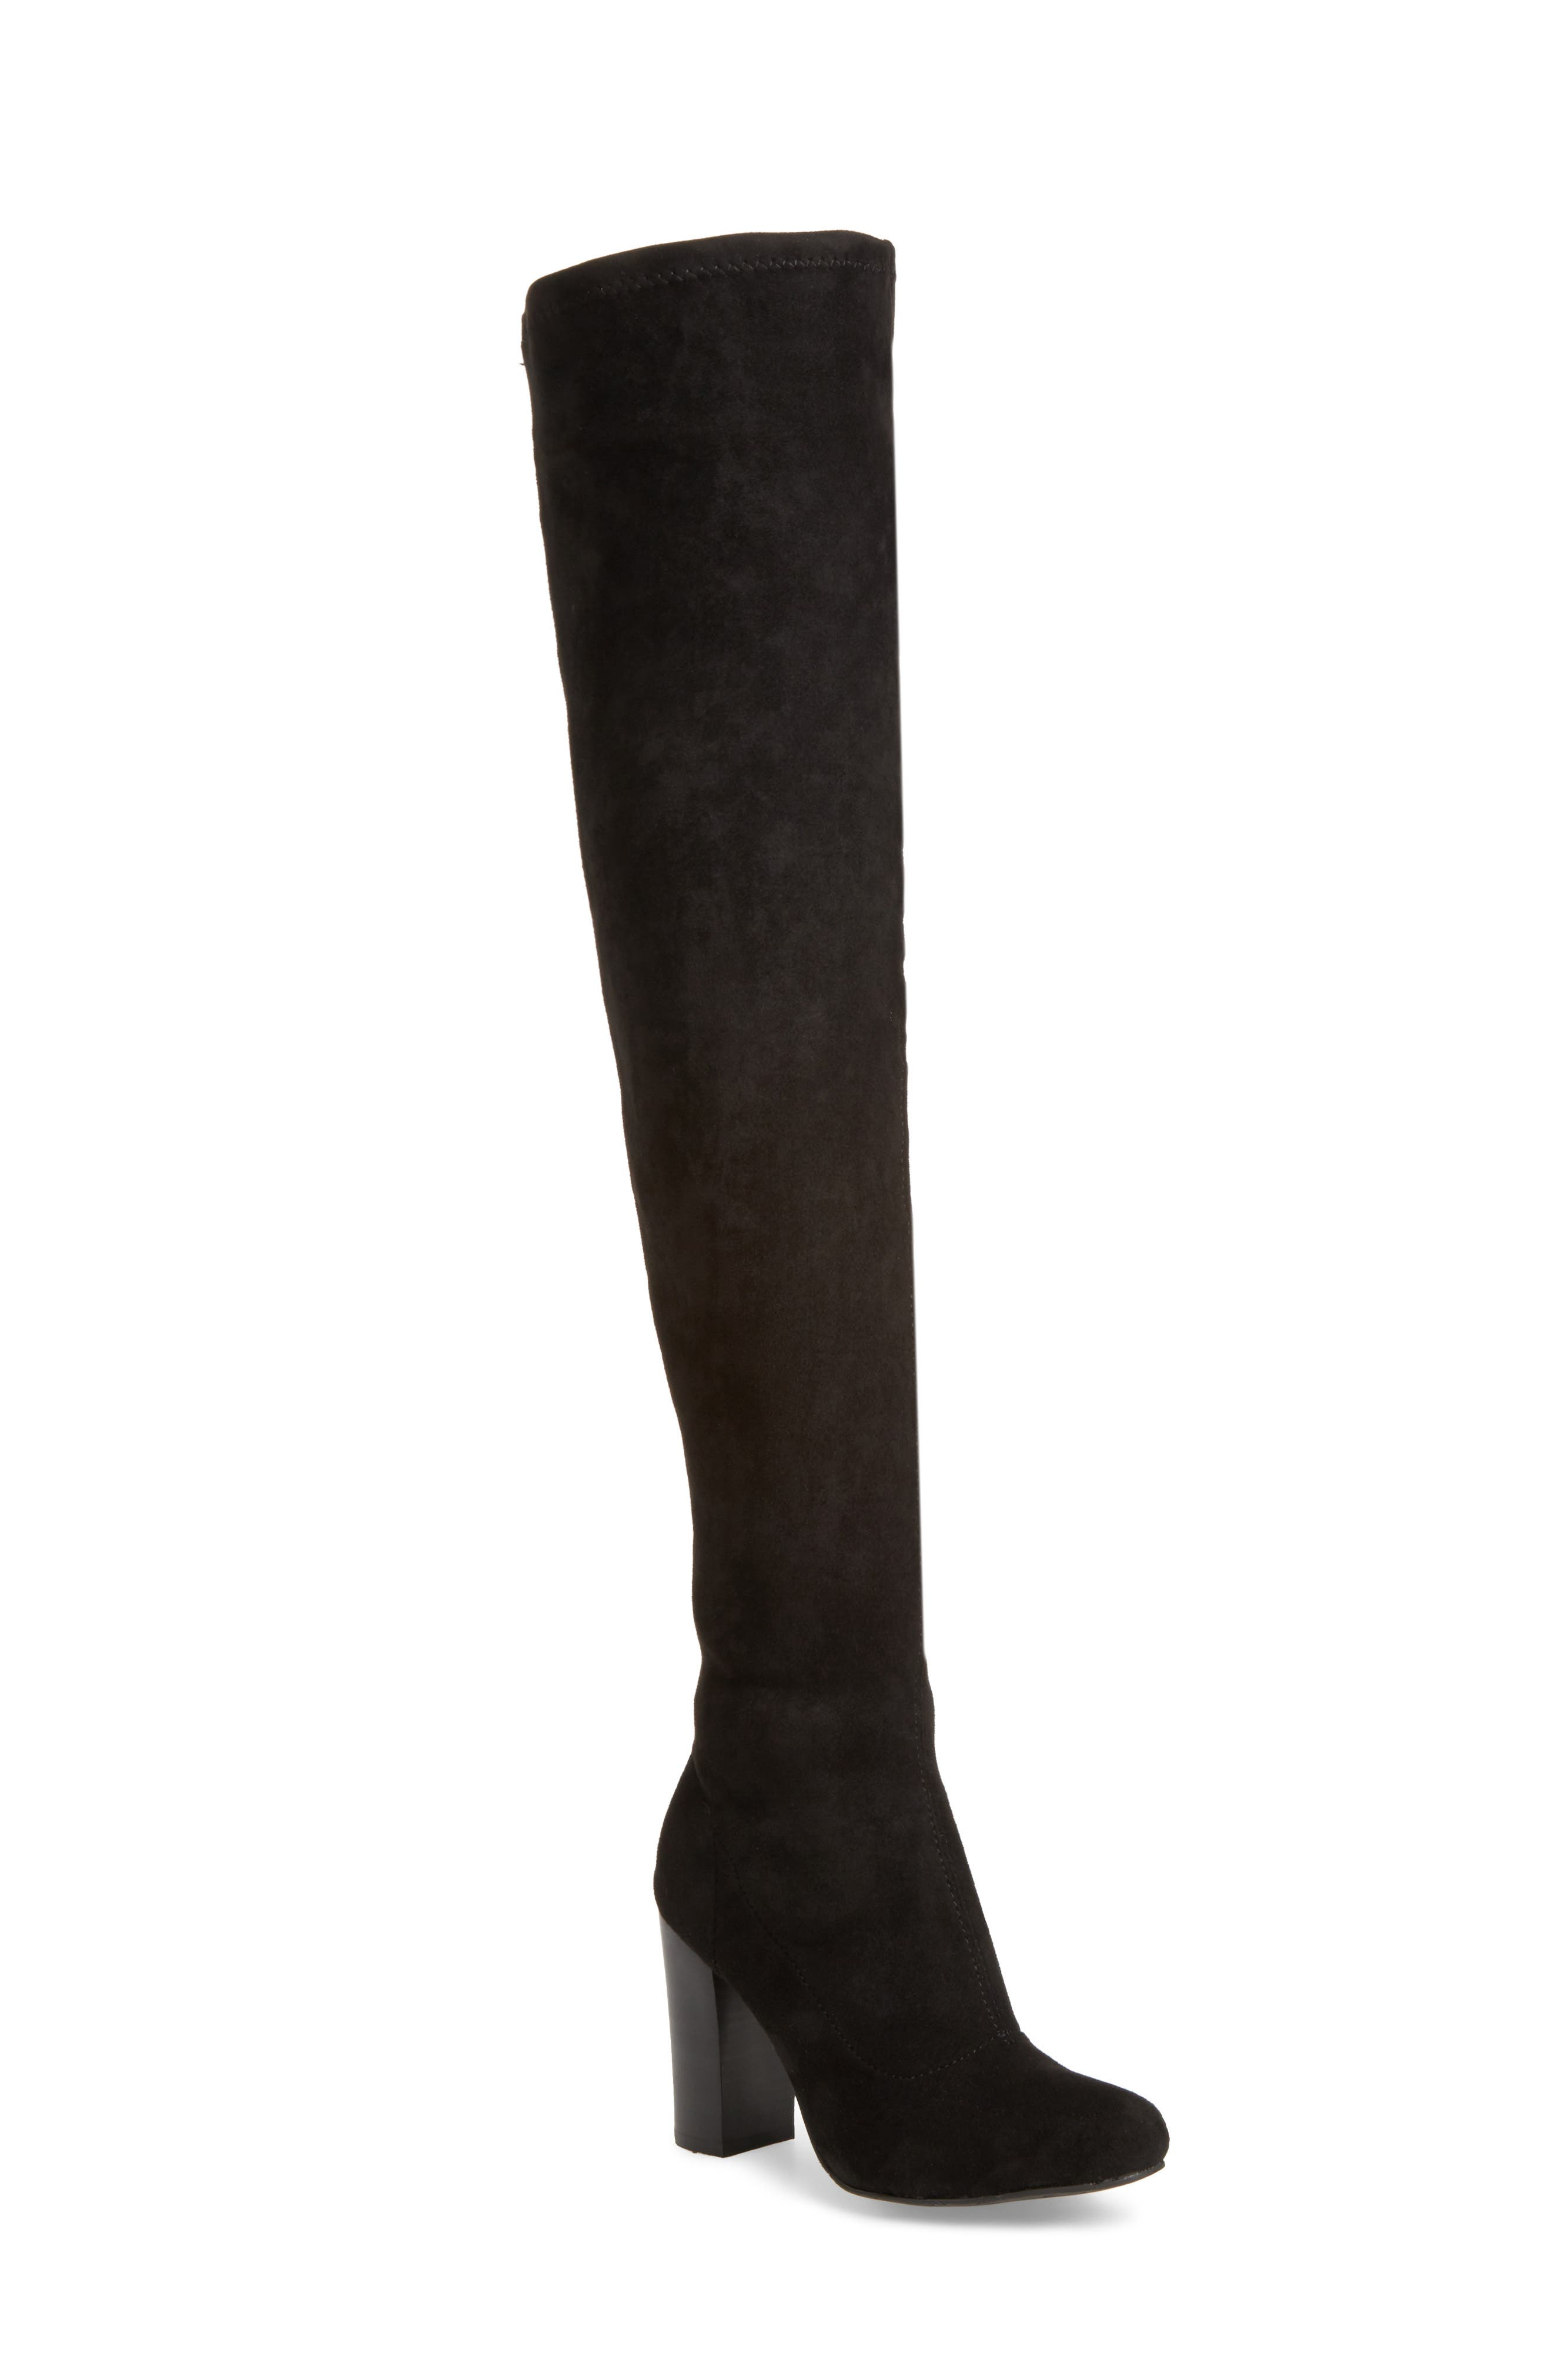 Alternate Image 1 Selected - MIA Christa Thigh High Boot (Women)